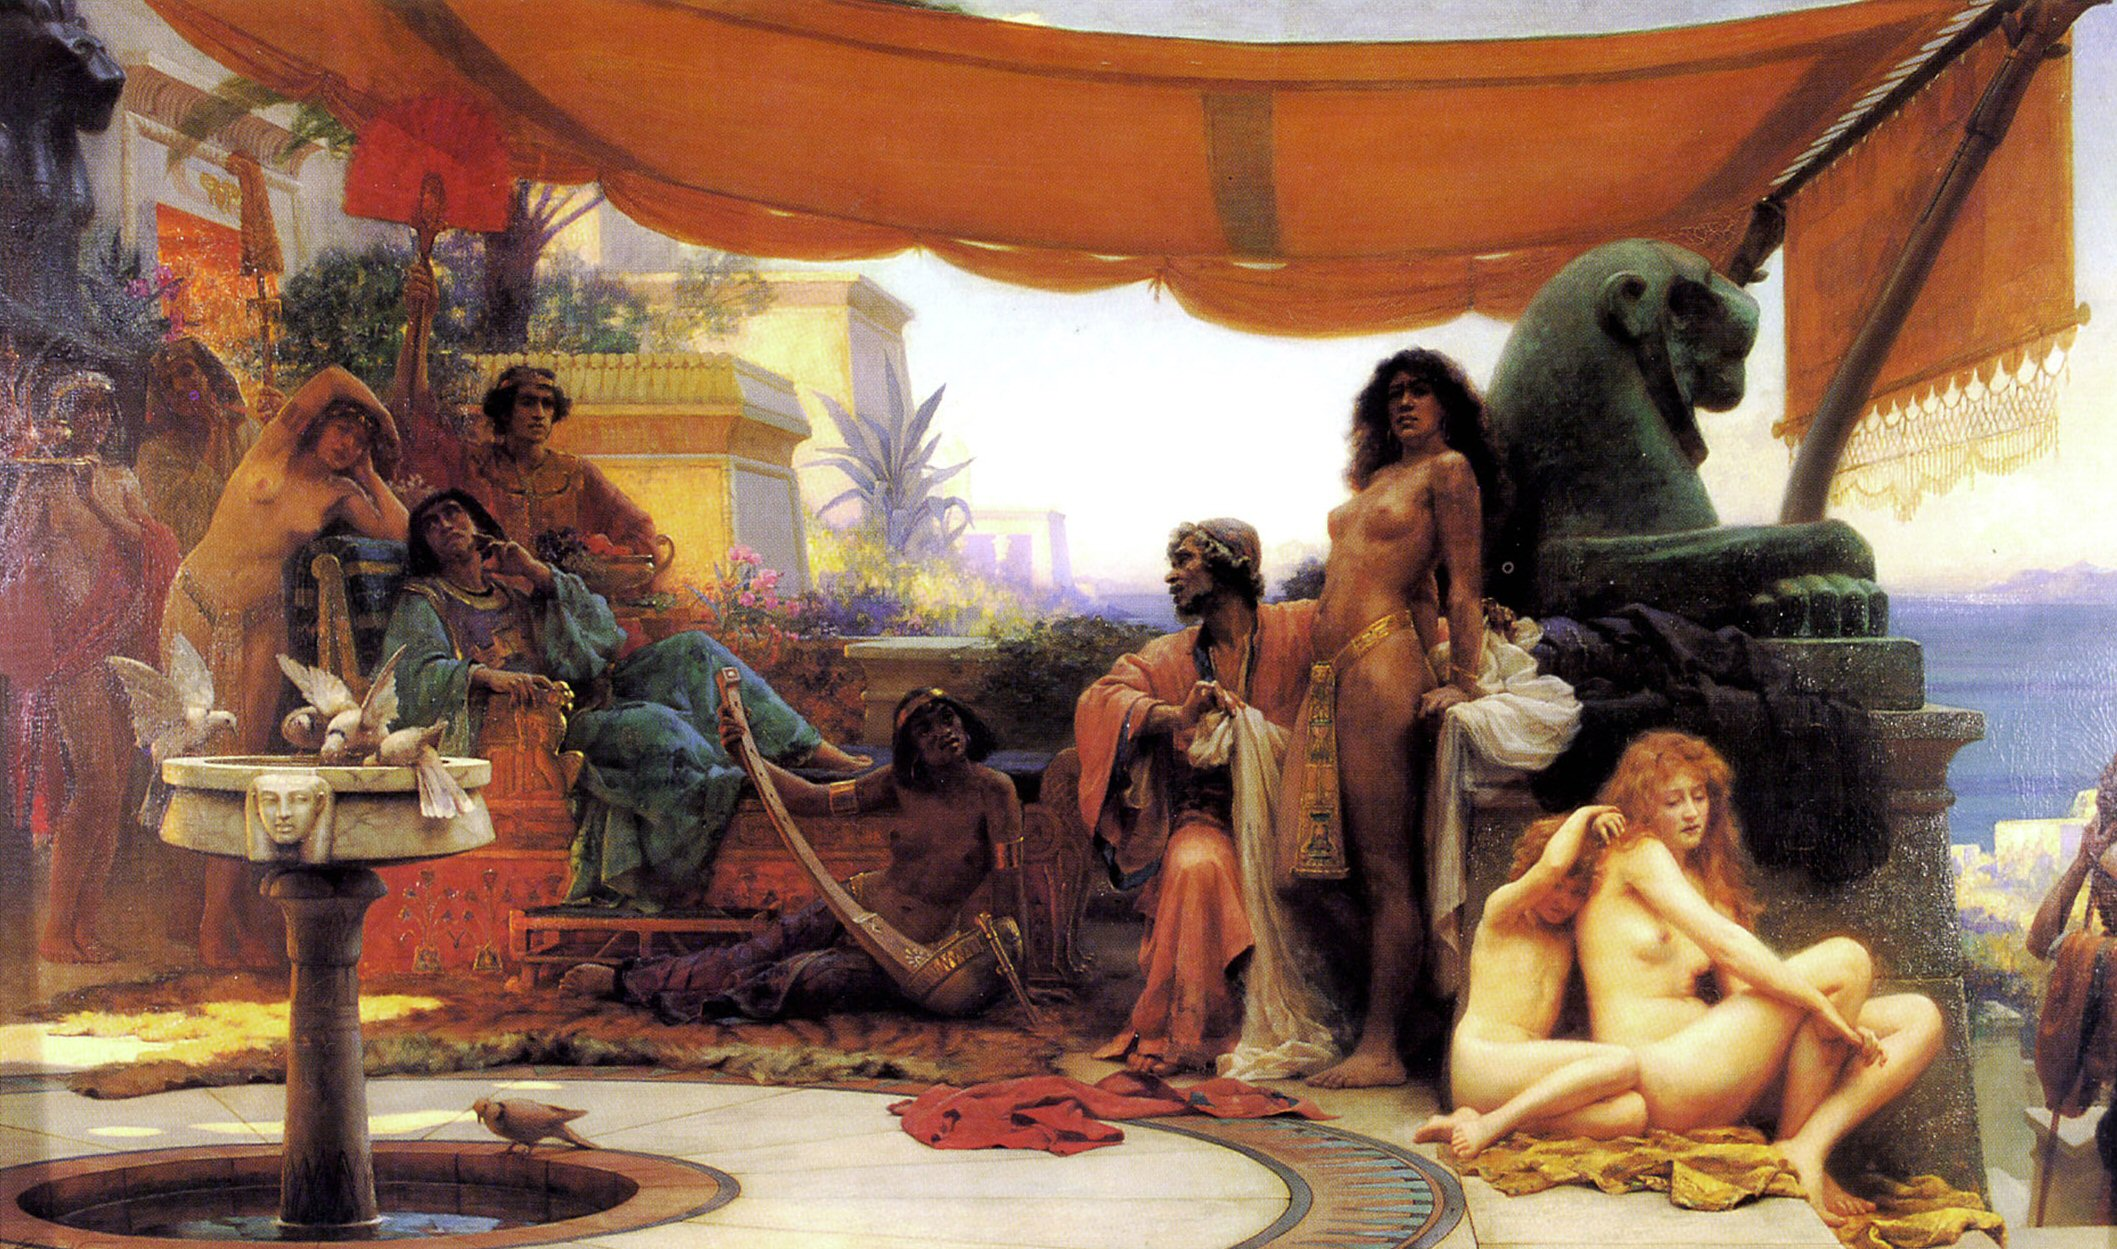 Nudity in Ancient Greece